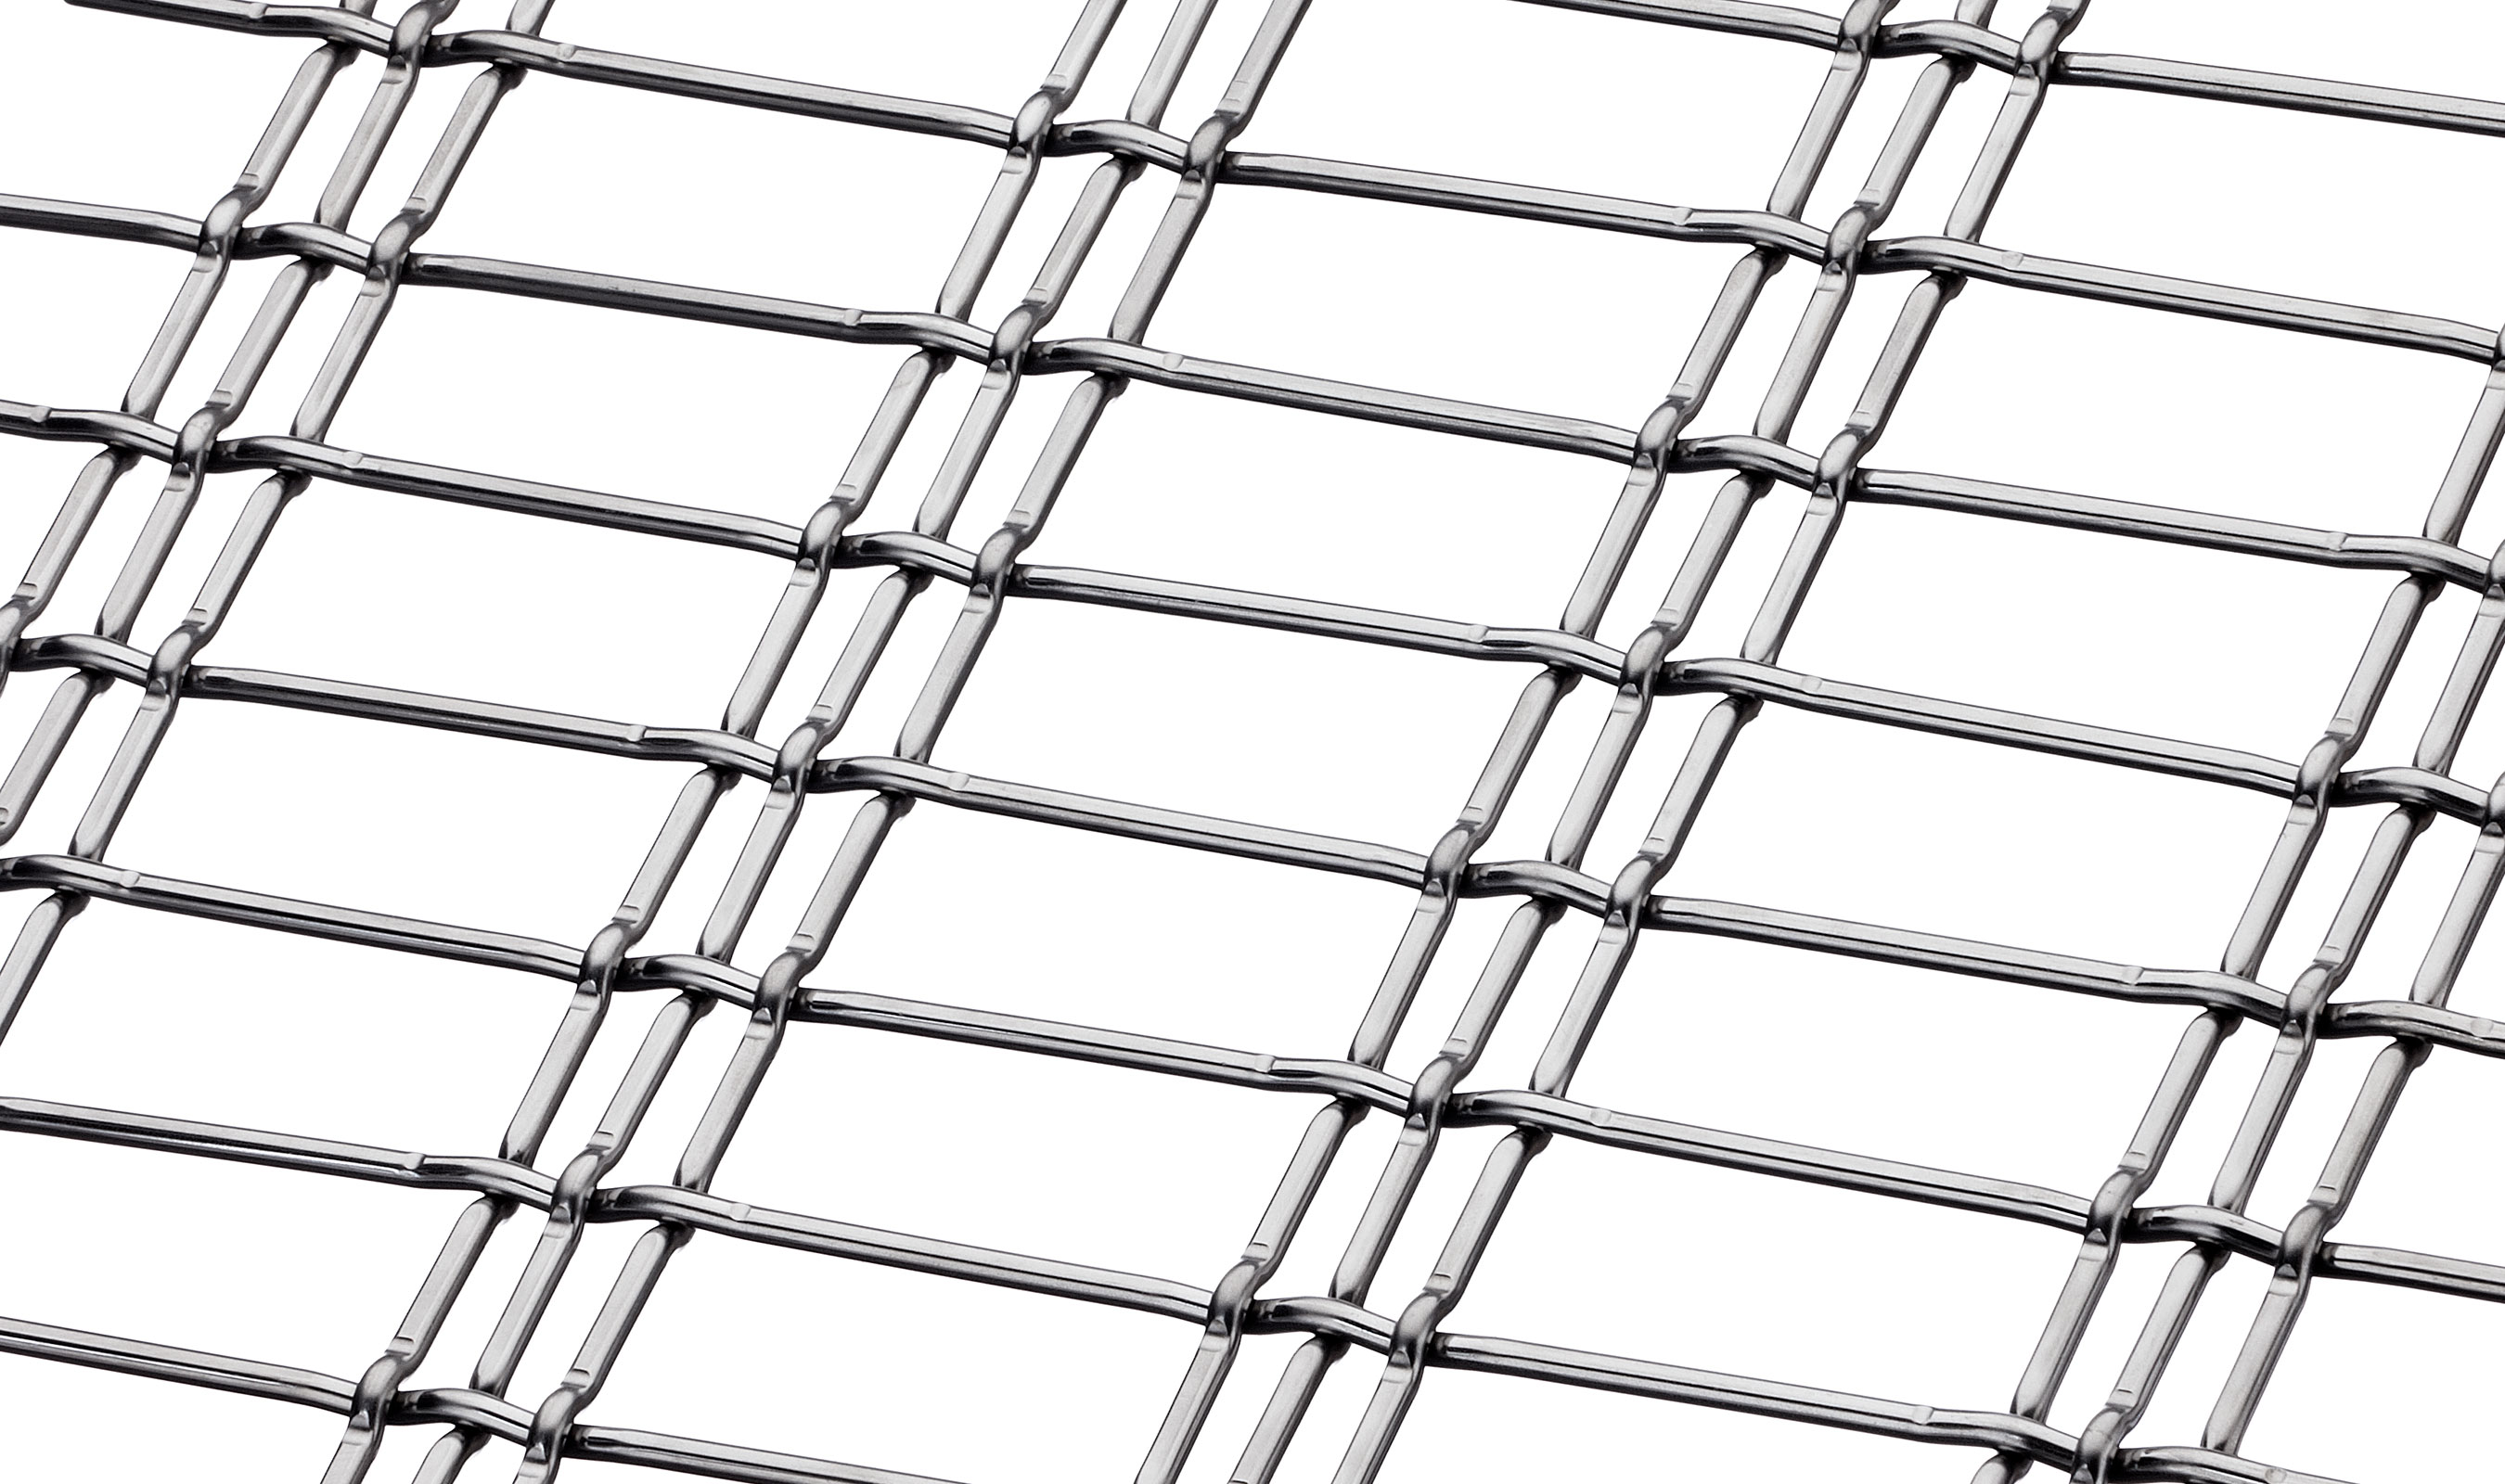 M13Z-146 Angle in Stainless Woven Wire Mesh